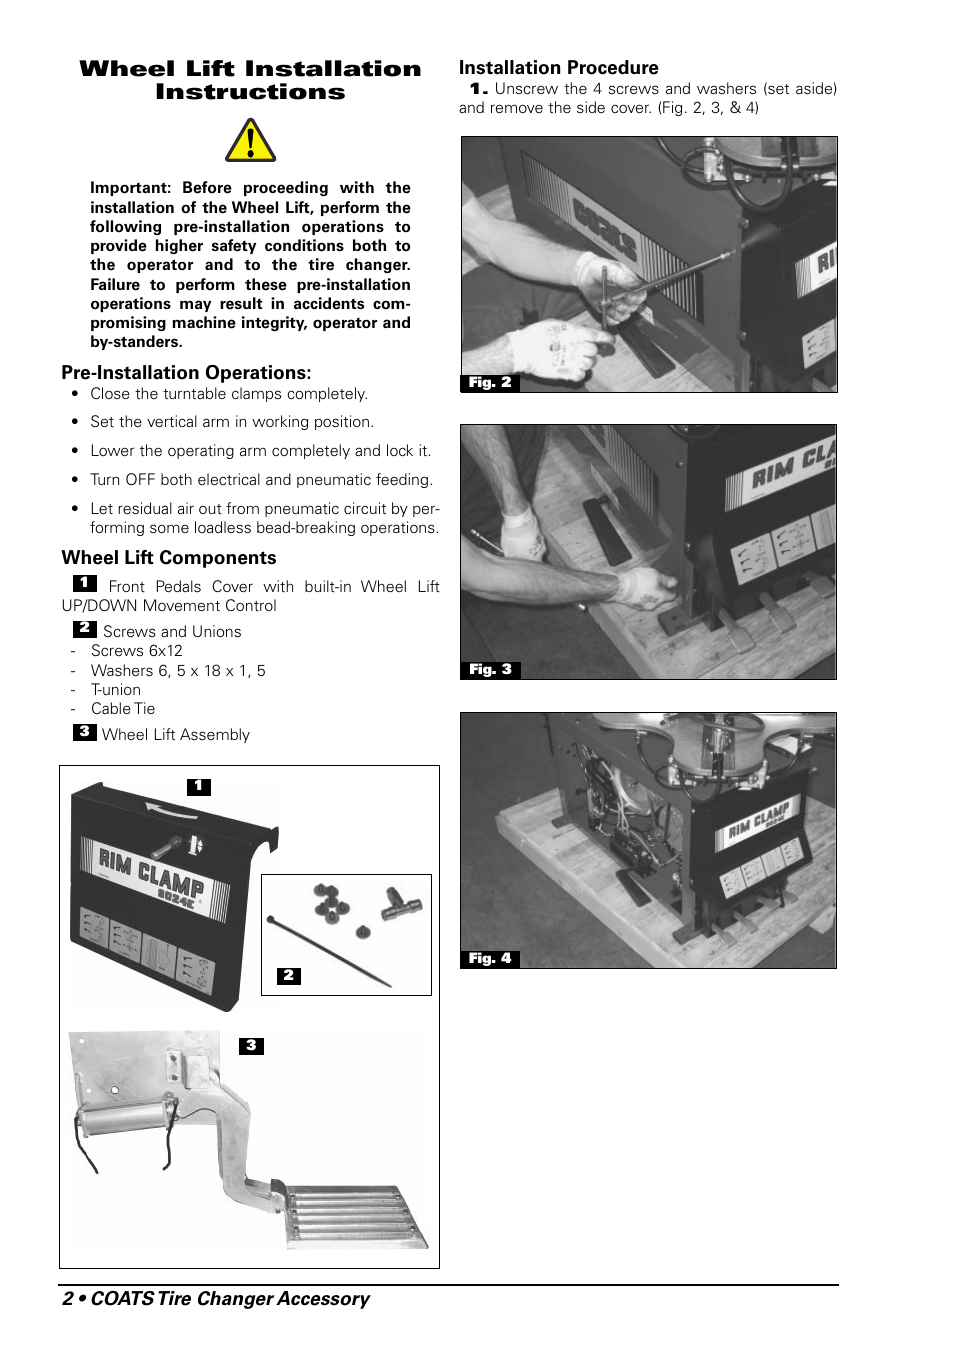 Wheel lift installation instructions | COATS Wheel Lift for use with 9024E  Rim Clamp Tire Changer User Manual | Page 2 / 8